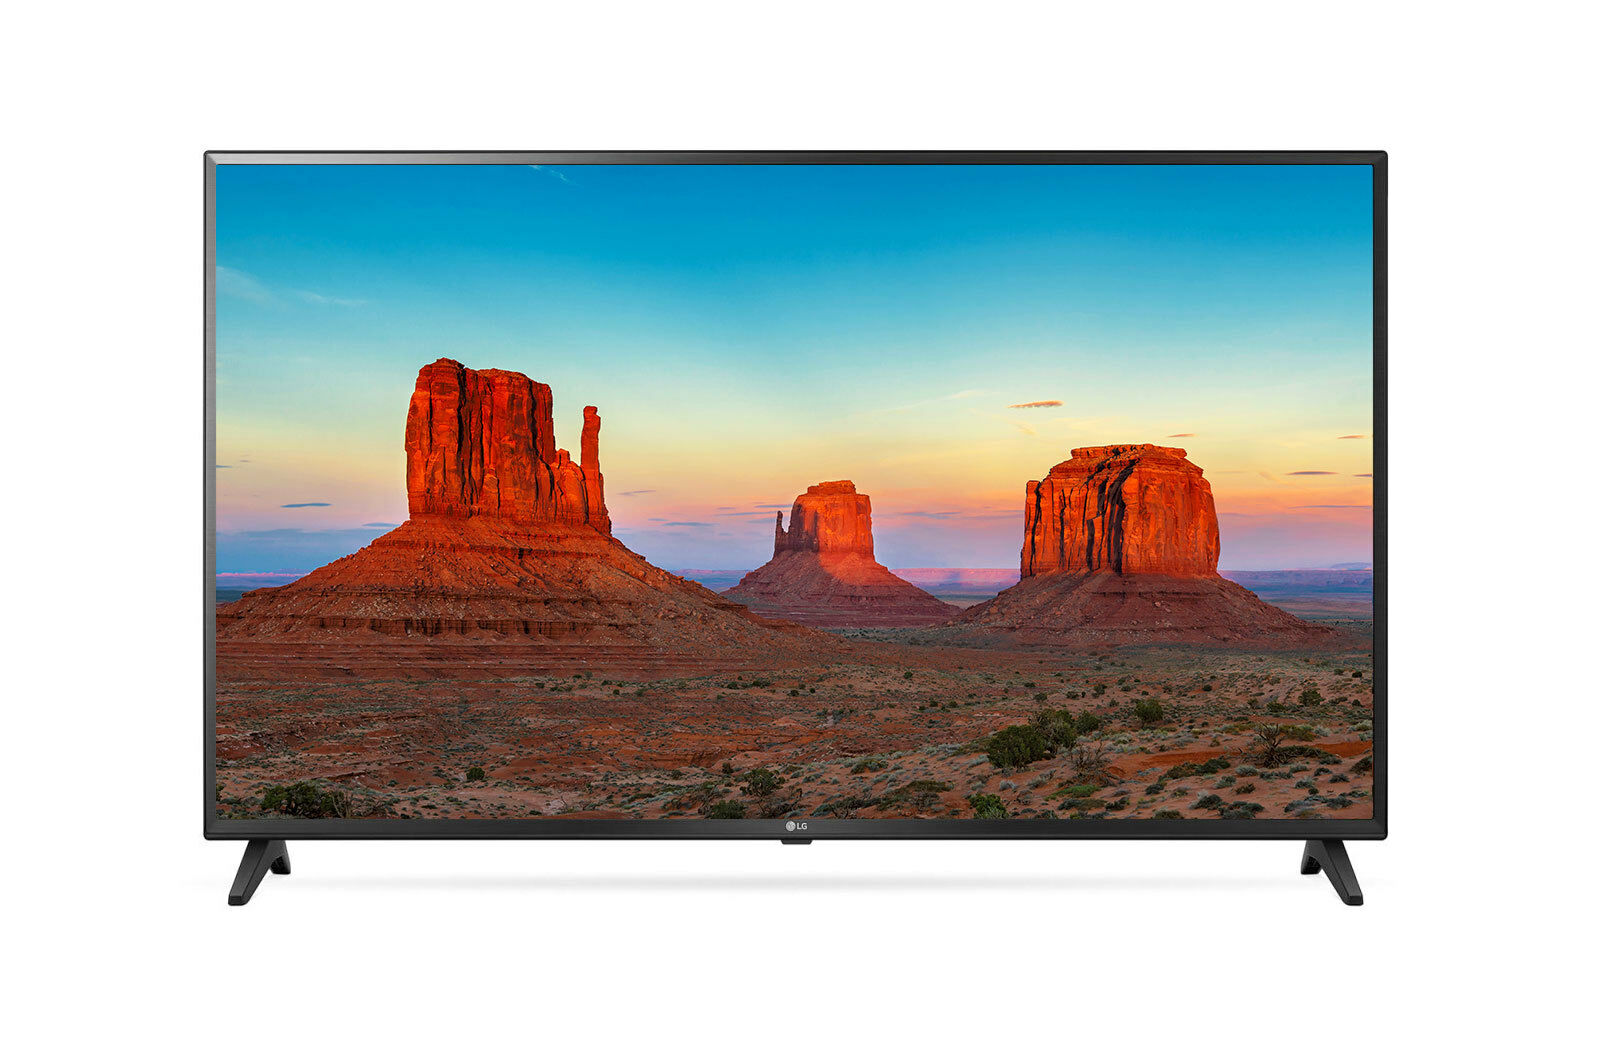 LG 55″ Class 4K (2160P) Smart LED TV (55UK6200PUA)